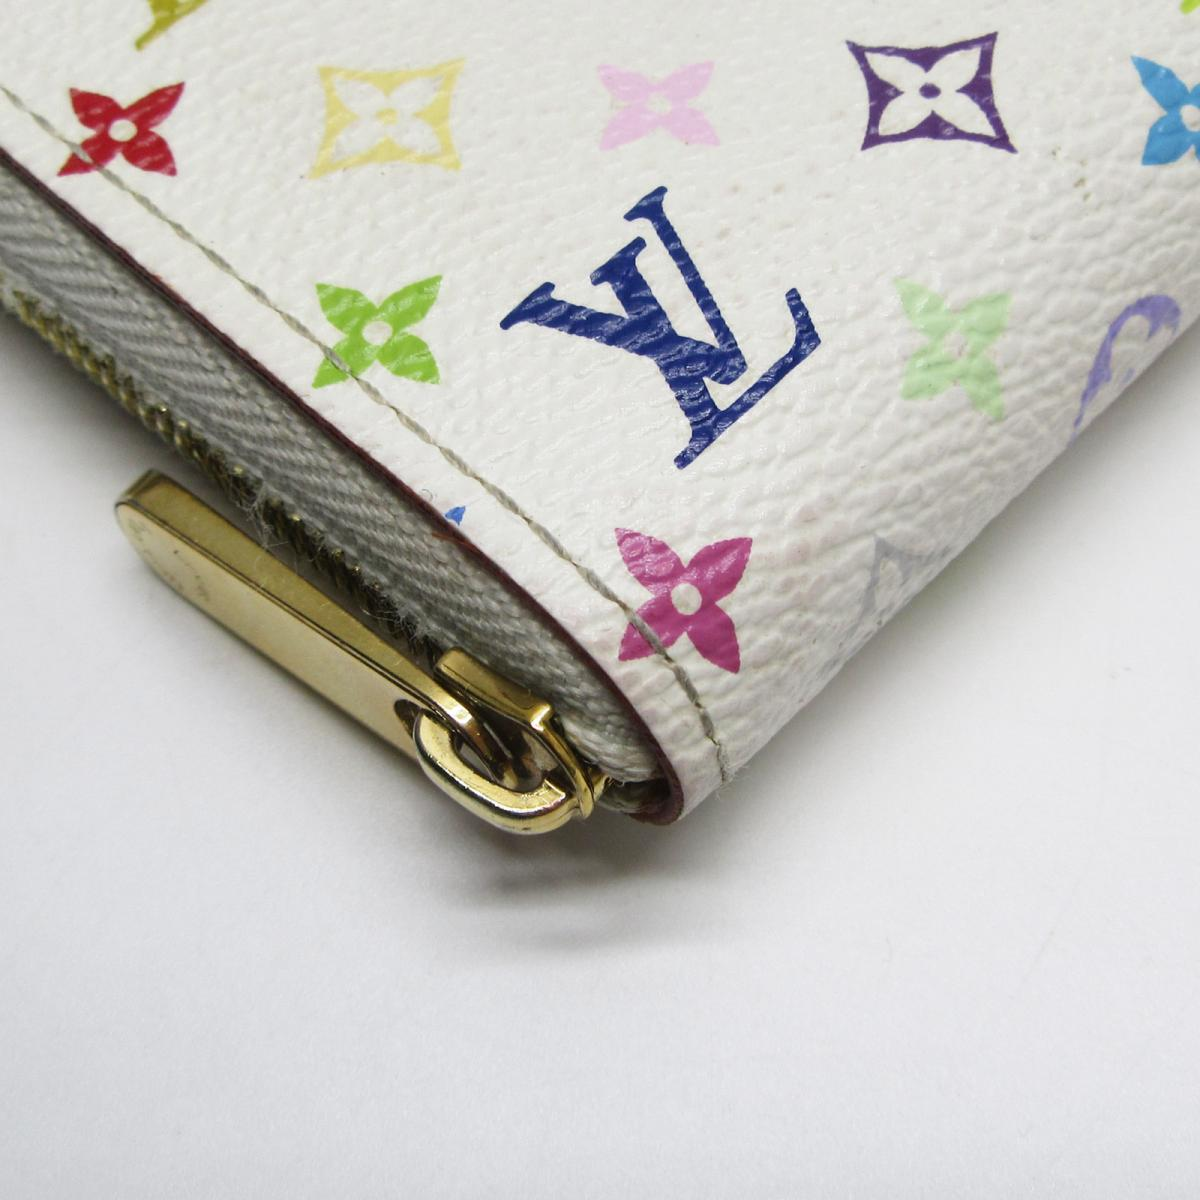 LOUIS VUITTON LV 路易威登 LOUIS VUITTON LV 路易威登 サイフ・小物 M93741 村上隆白彩拉鍊ㄇ型零錢包 Zippy Coin Purse M93741